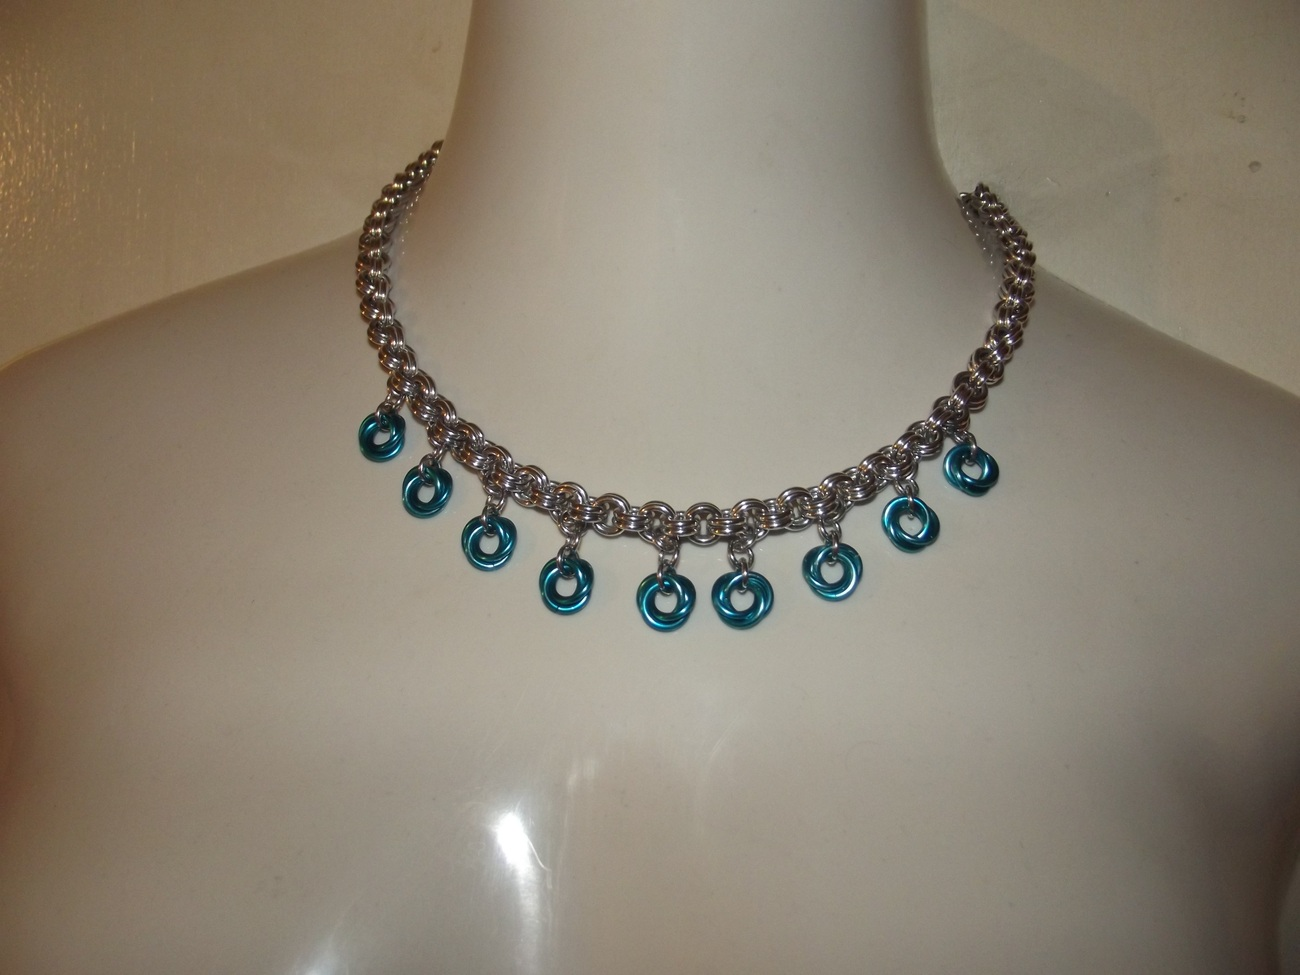 Rosette Chainmaille Necklace